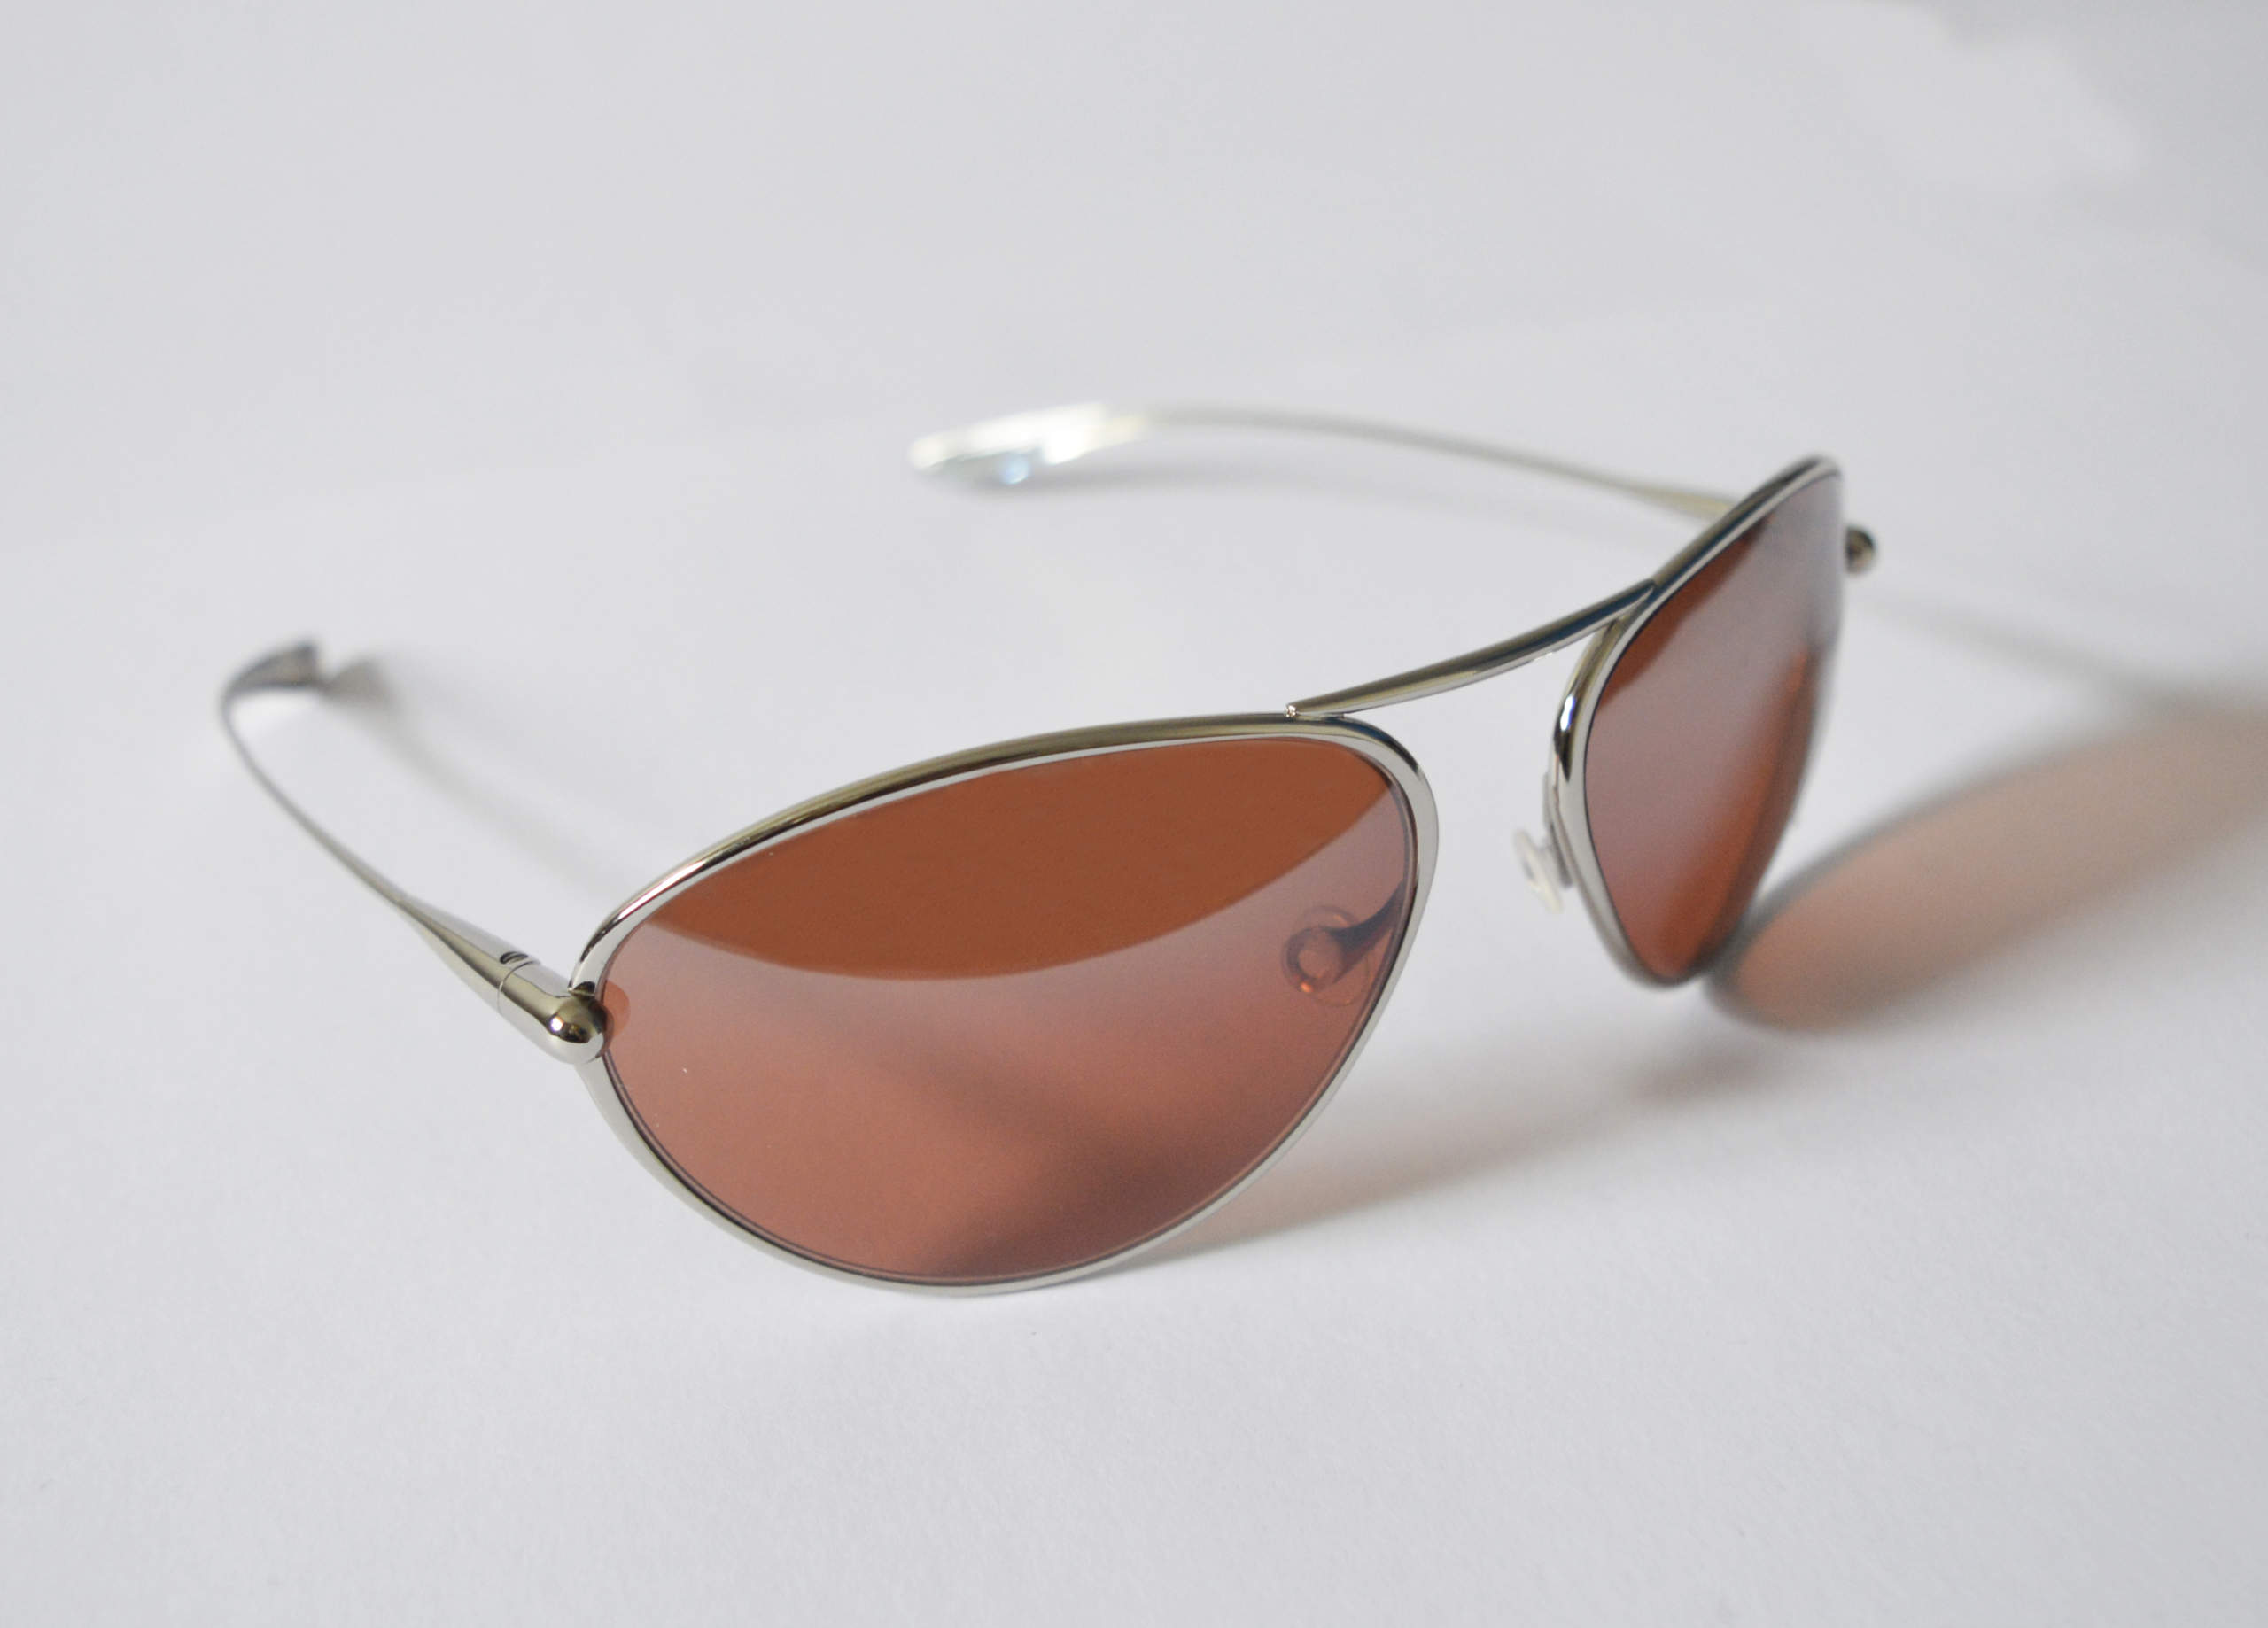 Tropo - Polished Titanium Frame Silver Gradient Mirror Copper/Brown Photochromic Sunglasses